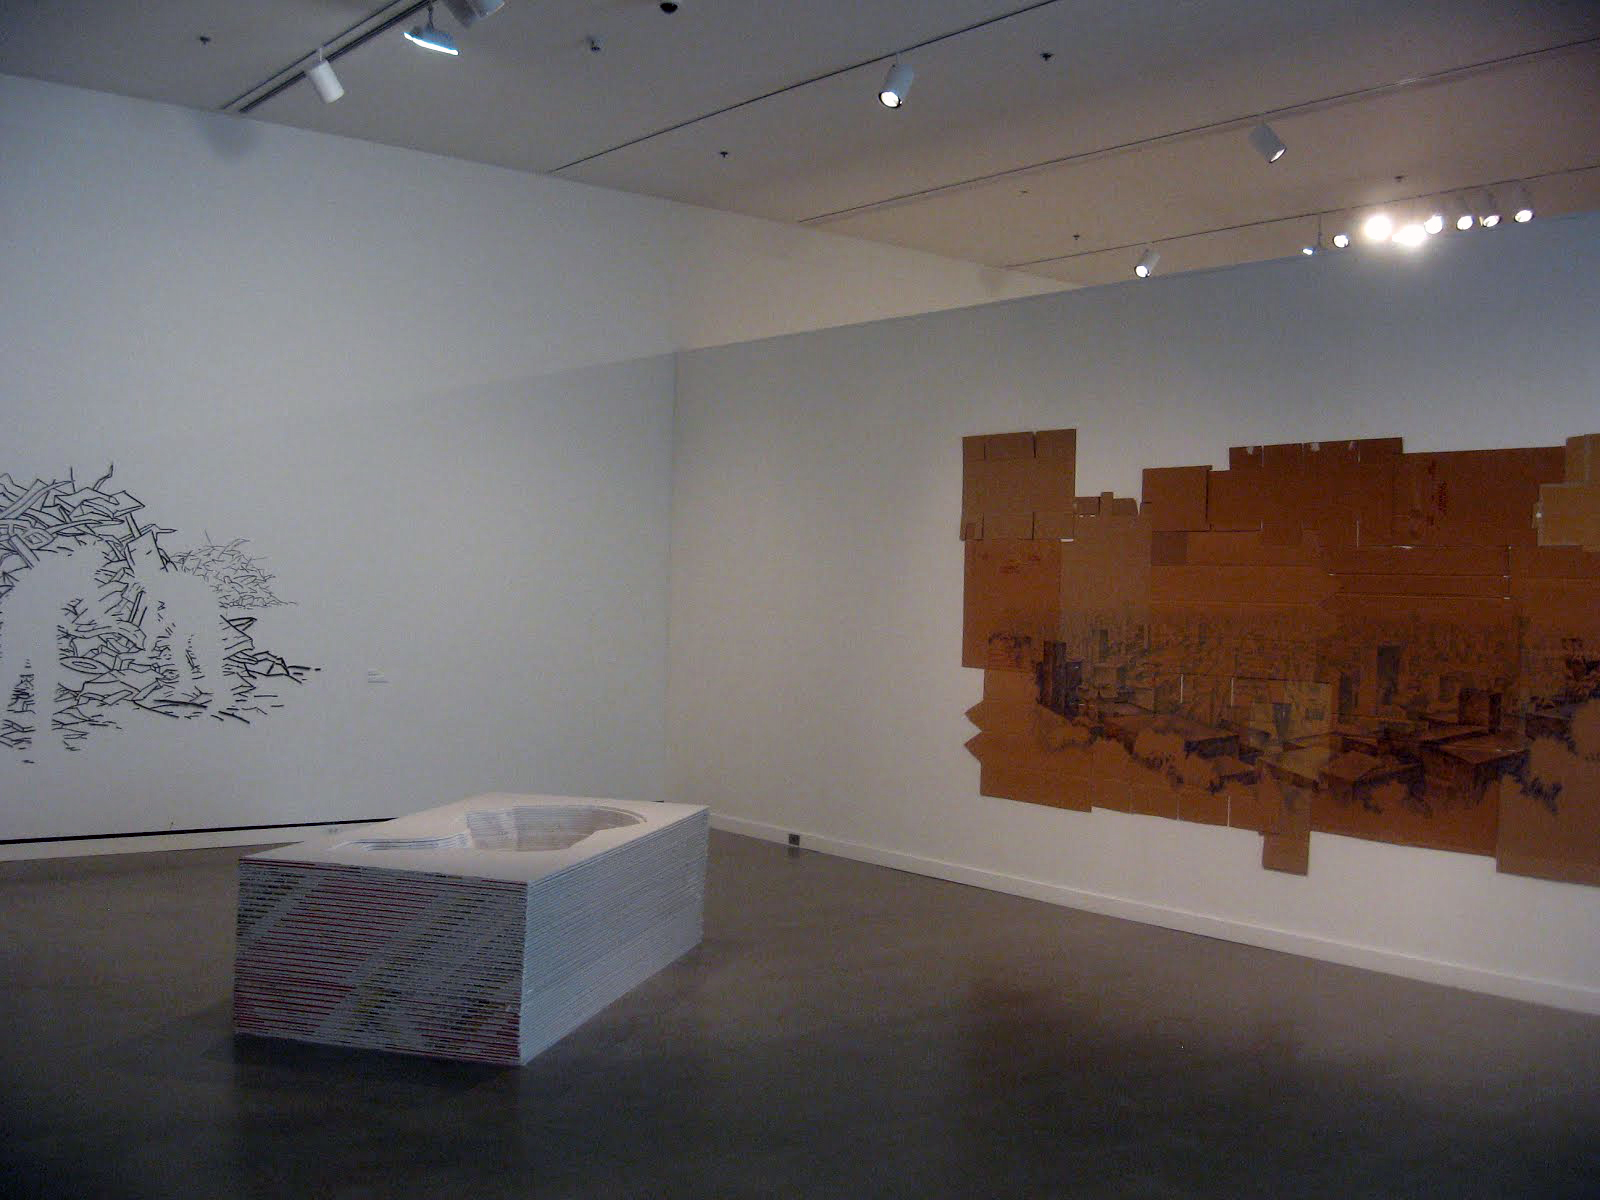 Other Positioning Systems, Rochester Art Center, 2009